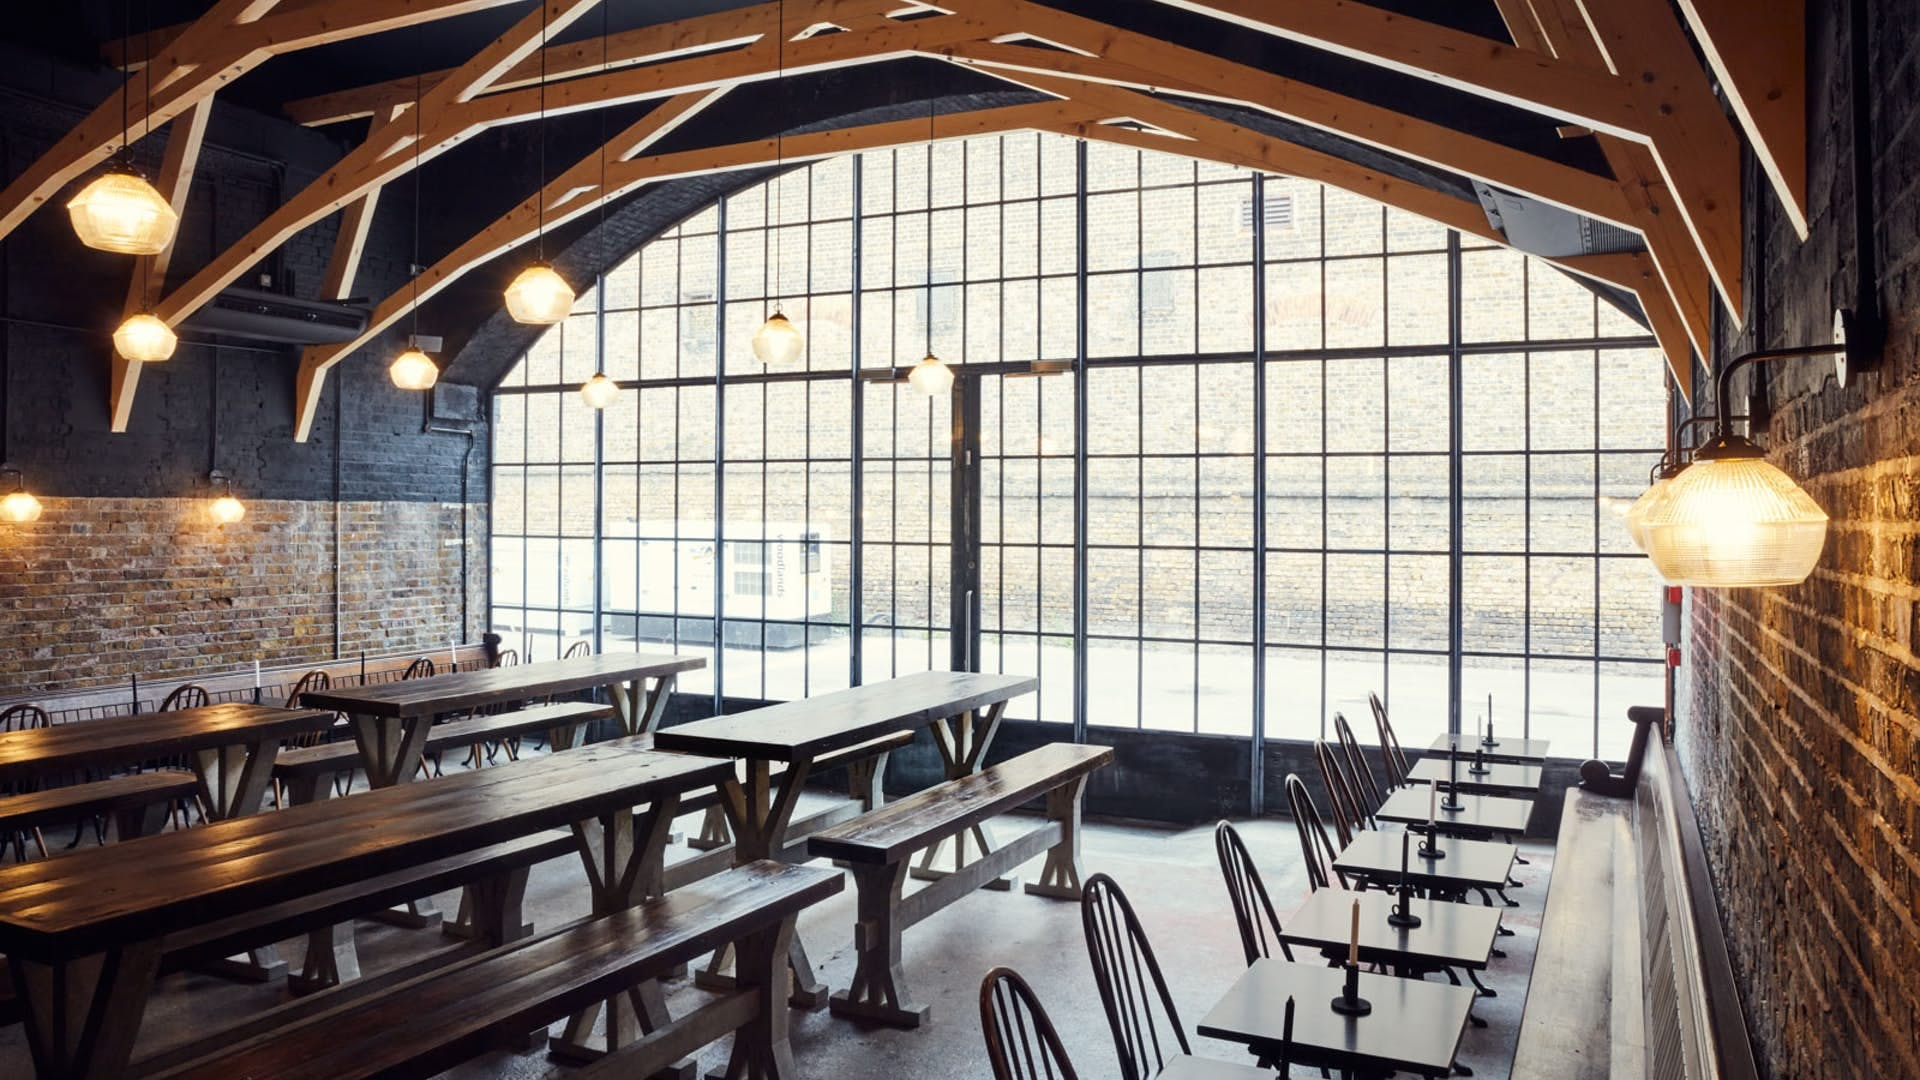 Vaulted room with benches at Hackney Church Brew Company